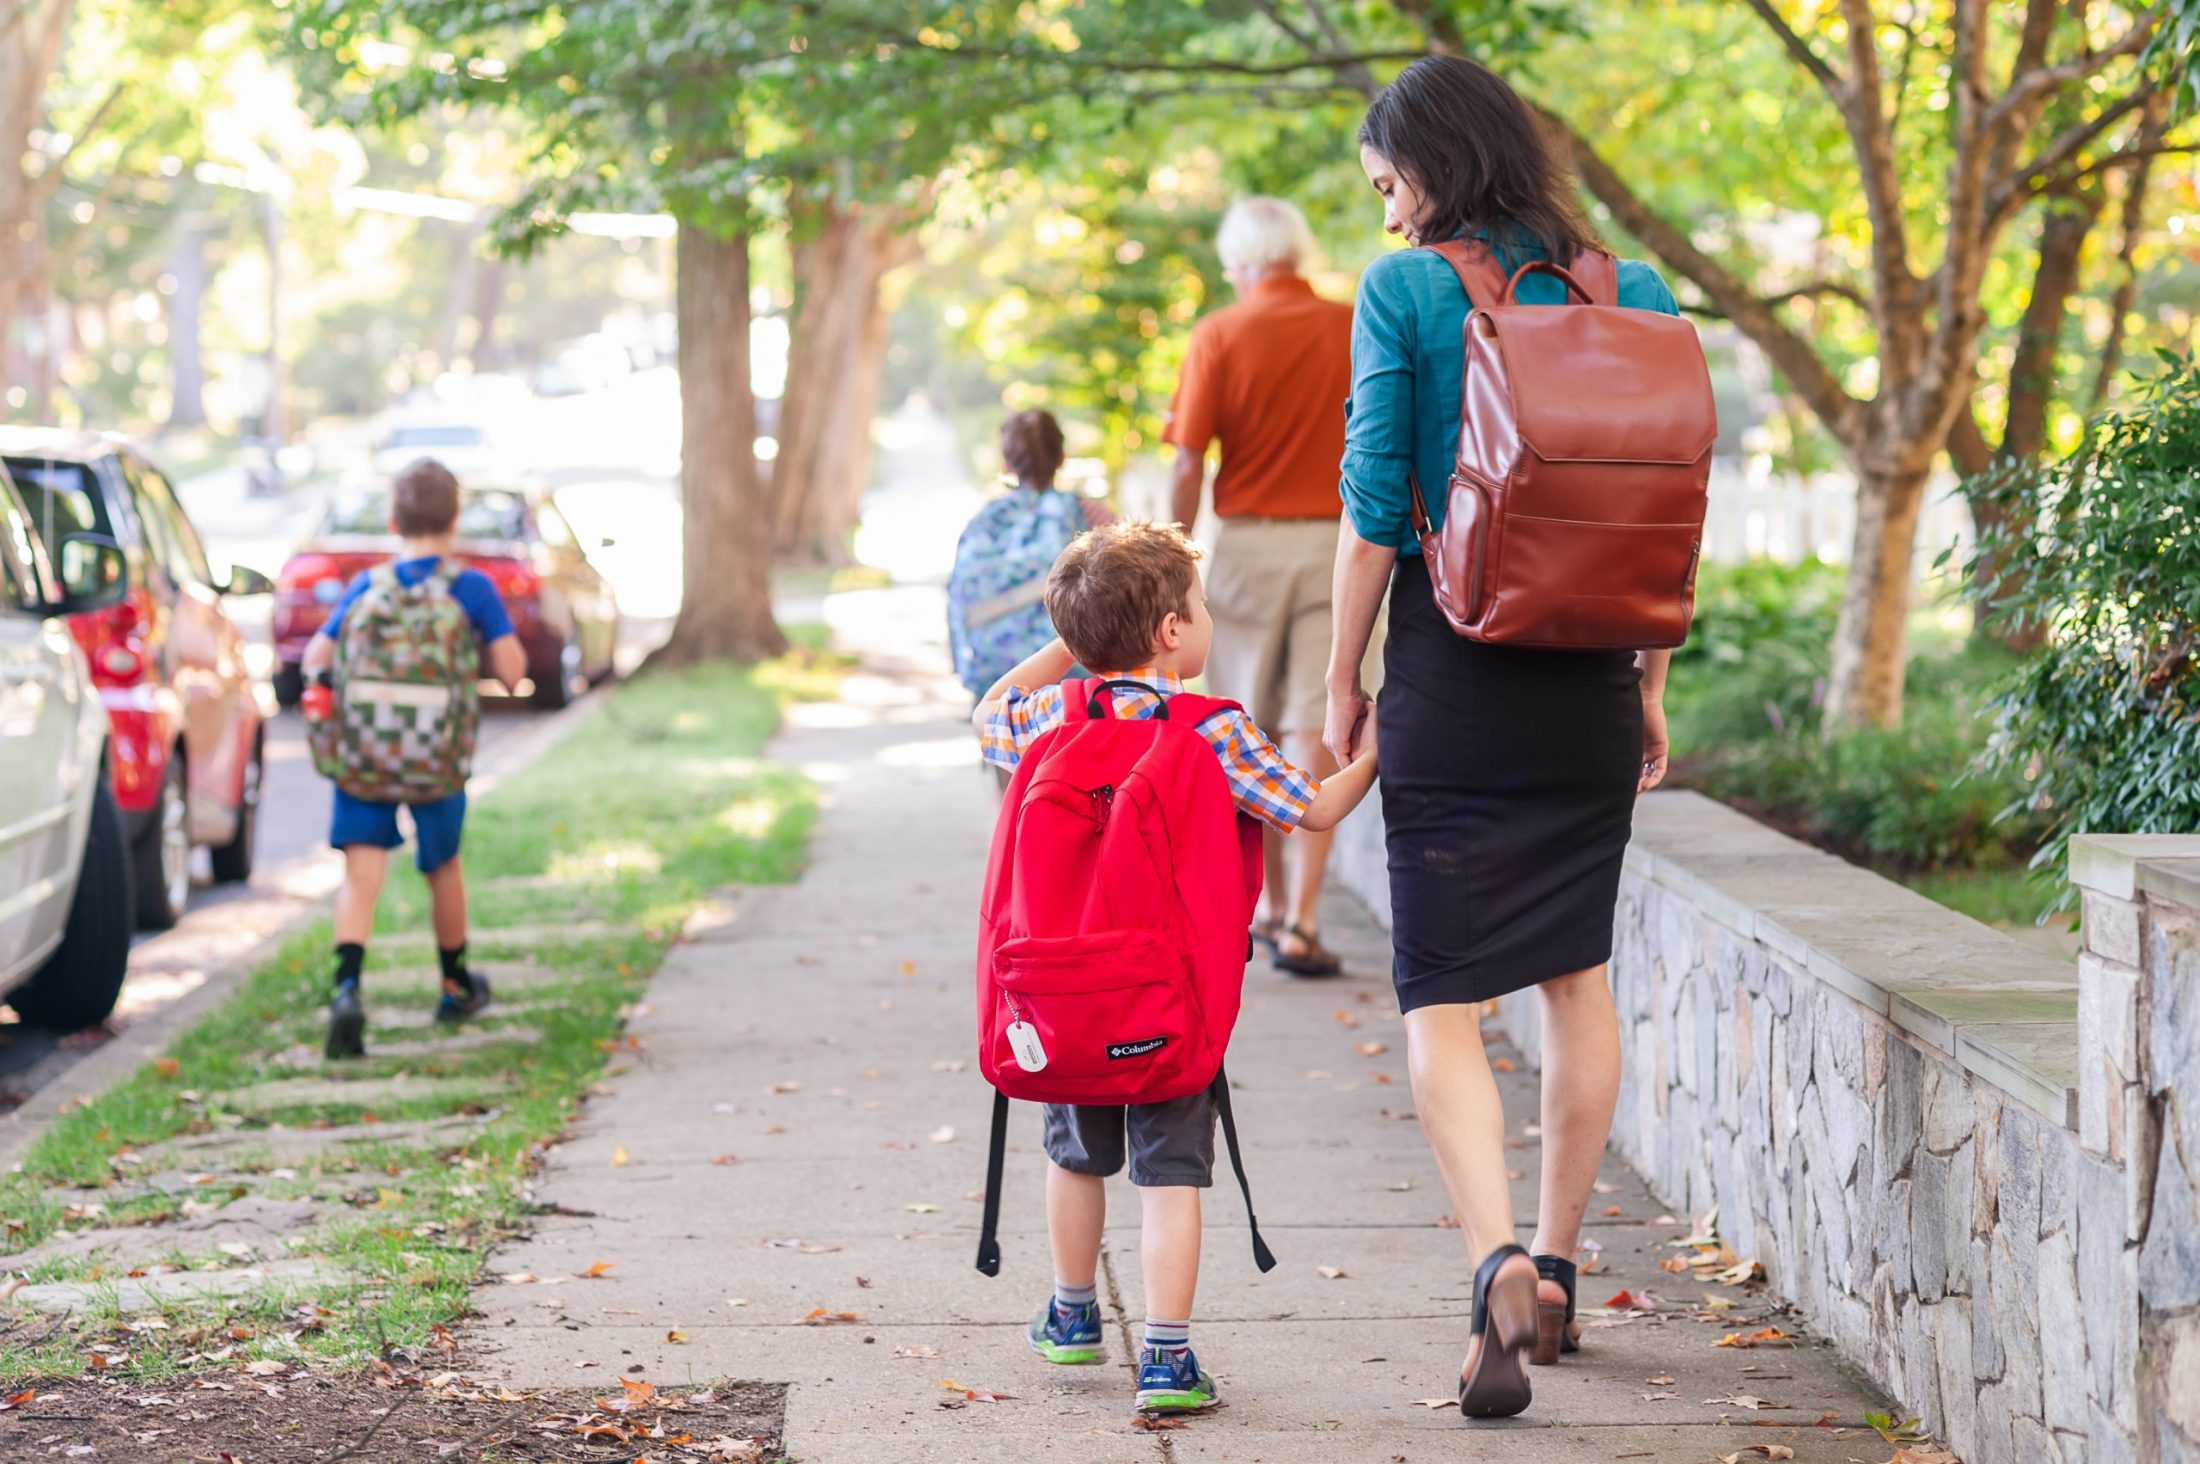 DC widow blog writer Marjorie Brimley walks away from the camera with son Tommy